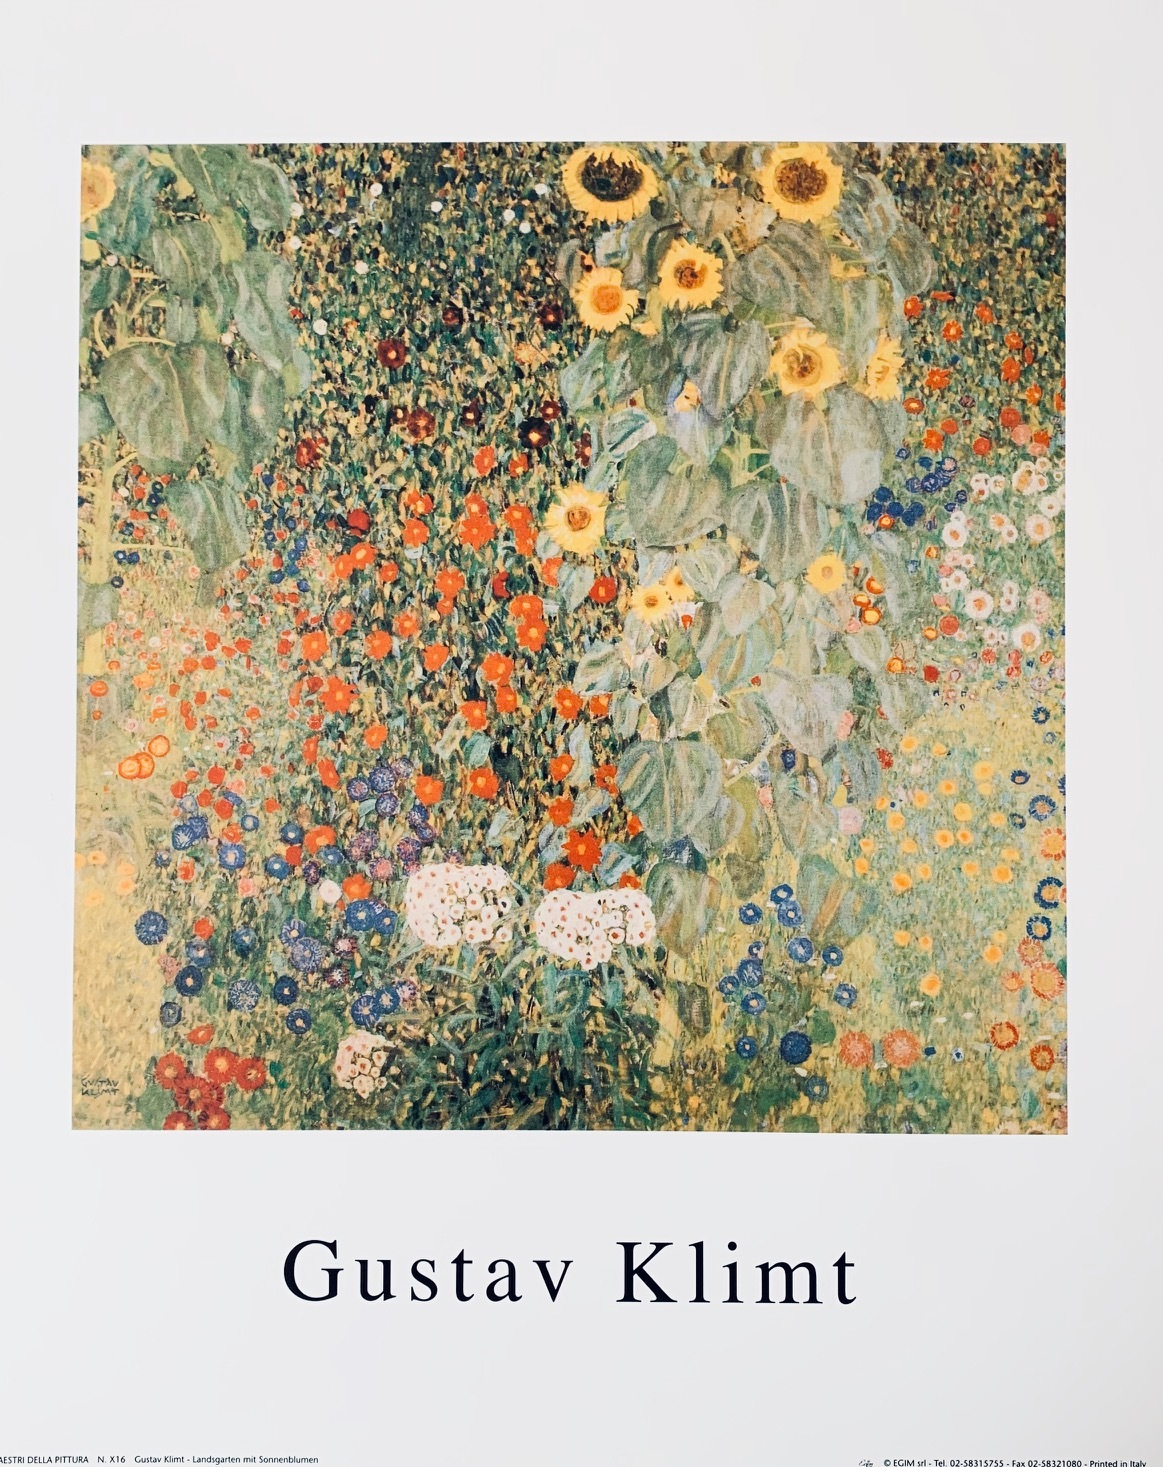 gustav klimt sonnenblumen poster kunstdruck bild 30x24cm ebay. Black Bedroom Furniture Sets. Home Design Ideas